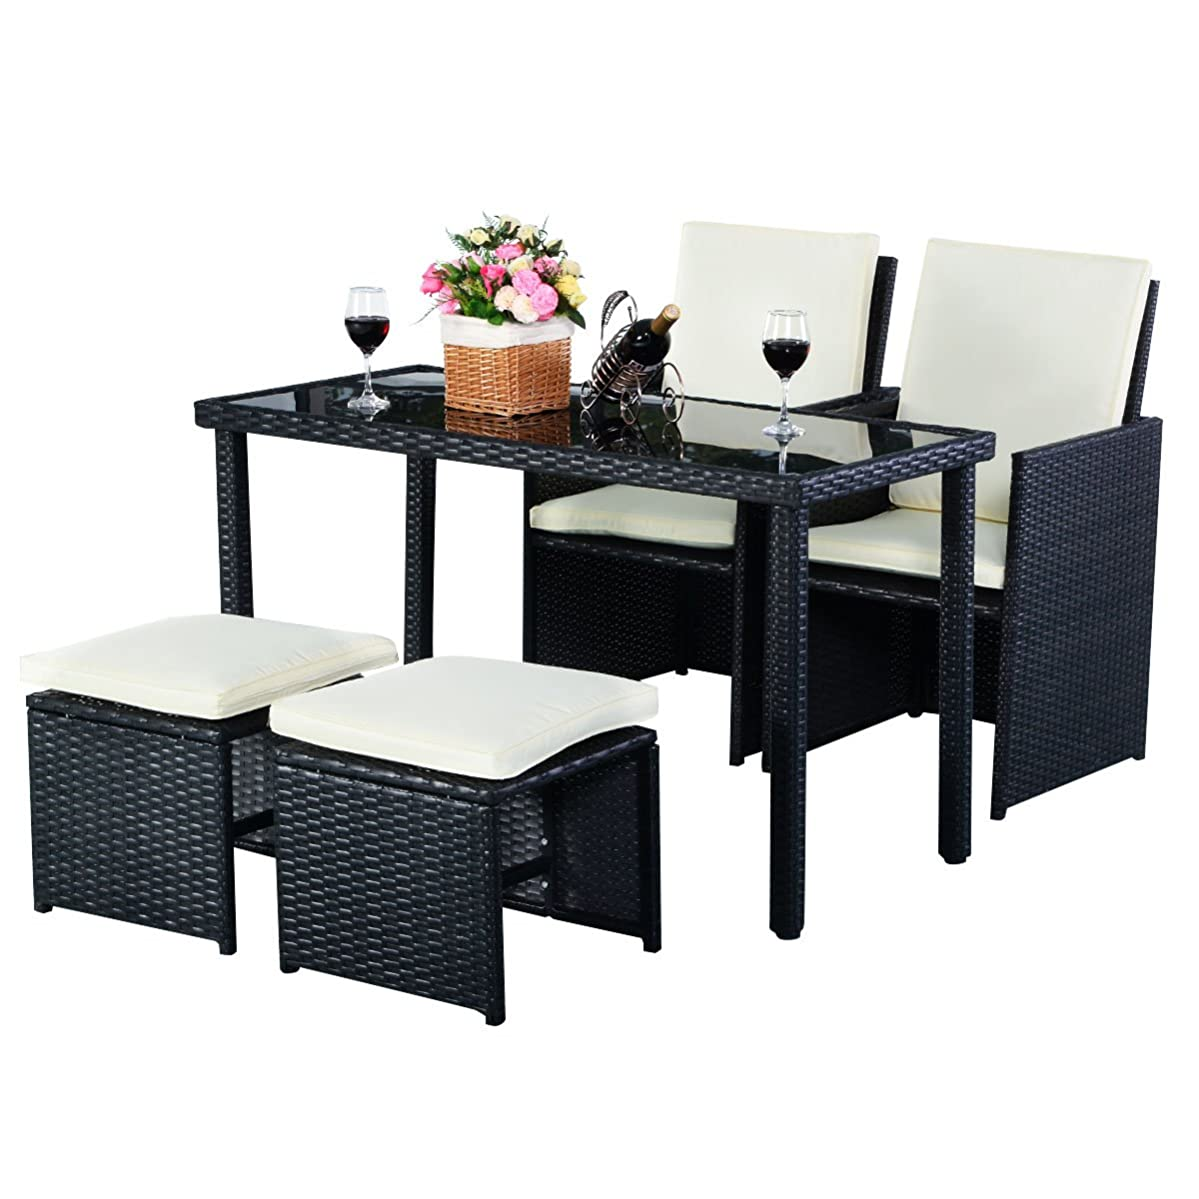 Tangkula Patio Furniture Outdoor Wicker Rattan Dining Set Cushioned Seat Garden Sectional Conversation Sofa with Glass Top Coffee Table (5pcs Black)